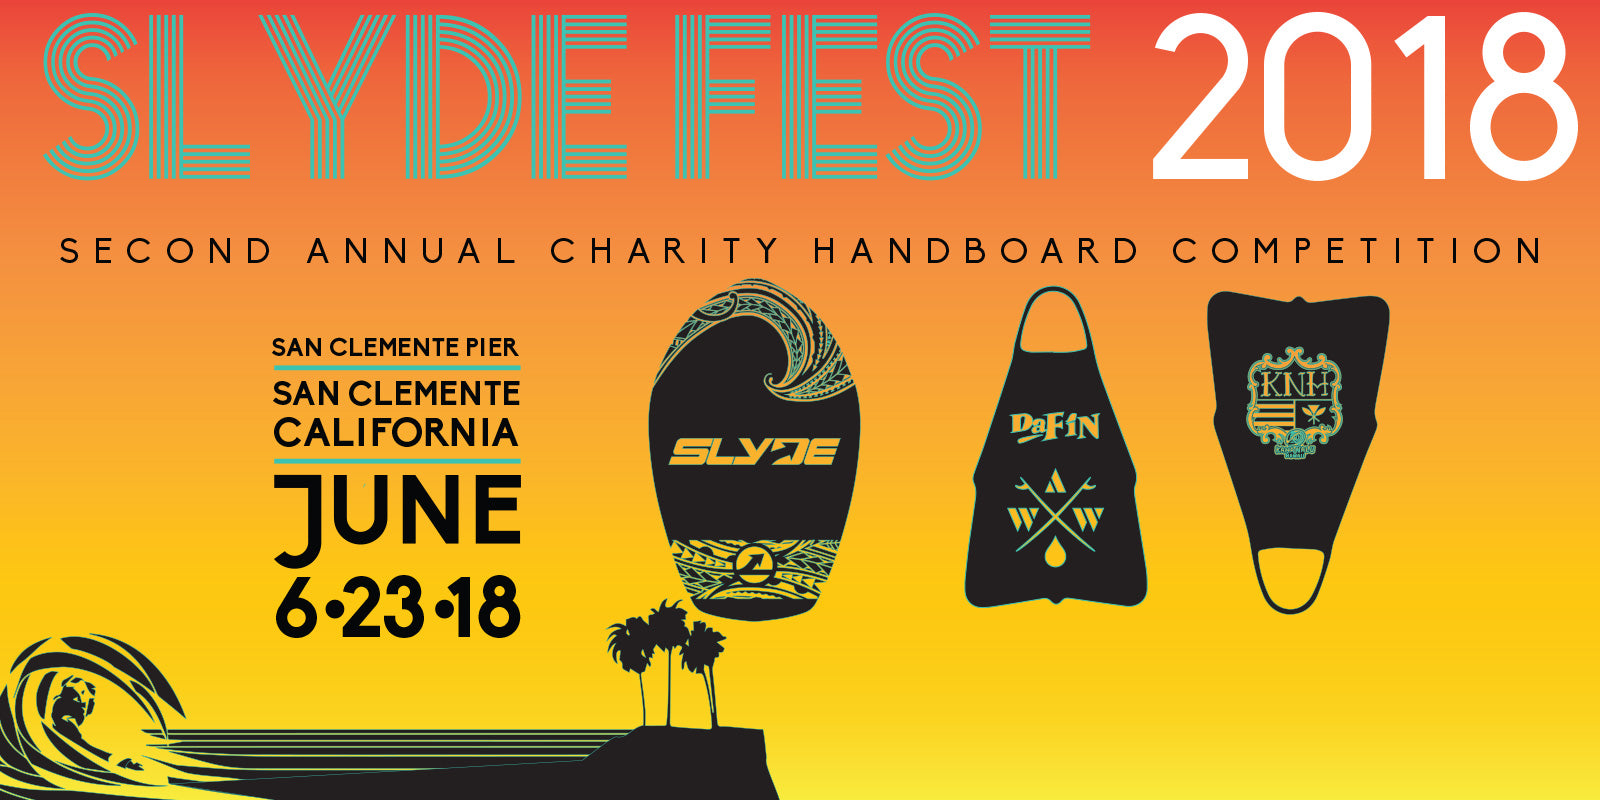 Slyde Fest 2018 Returns Saturday June 23rd San Clemente Pier Slyde Handboard Competition